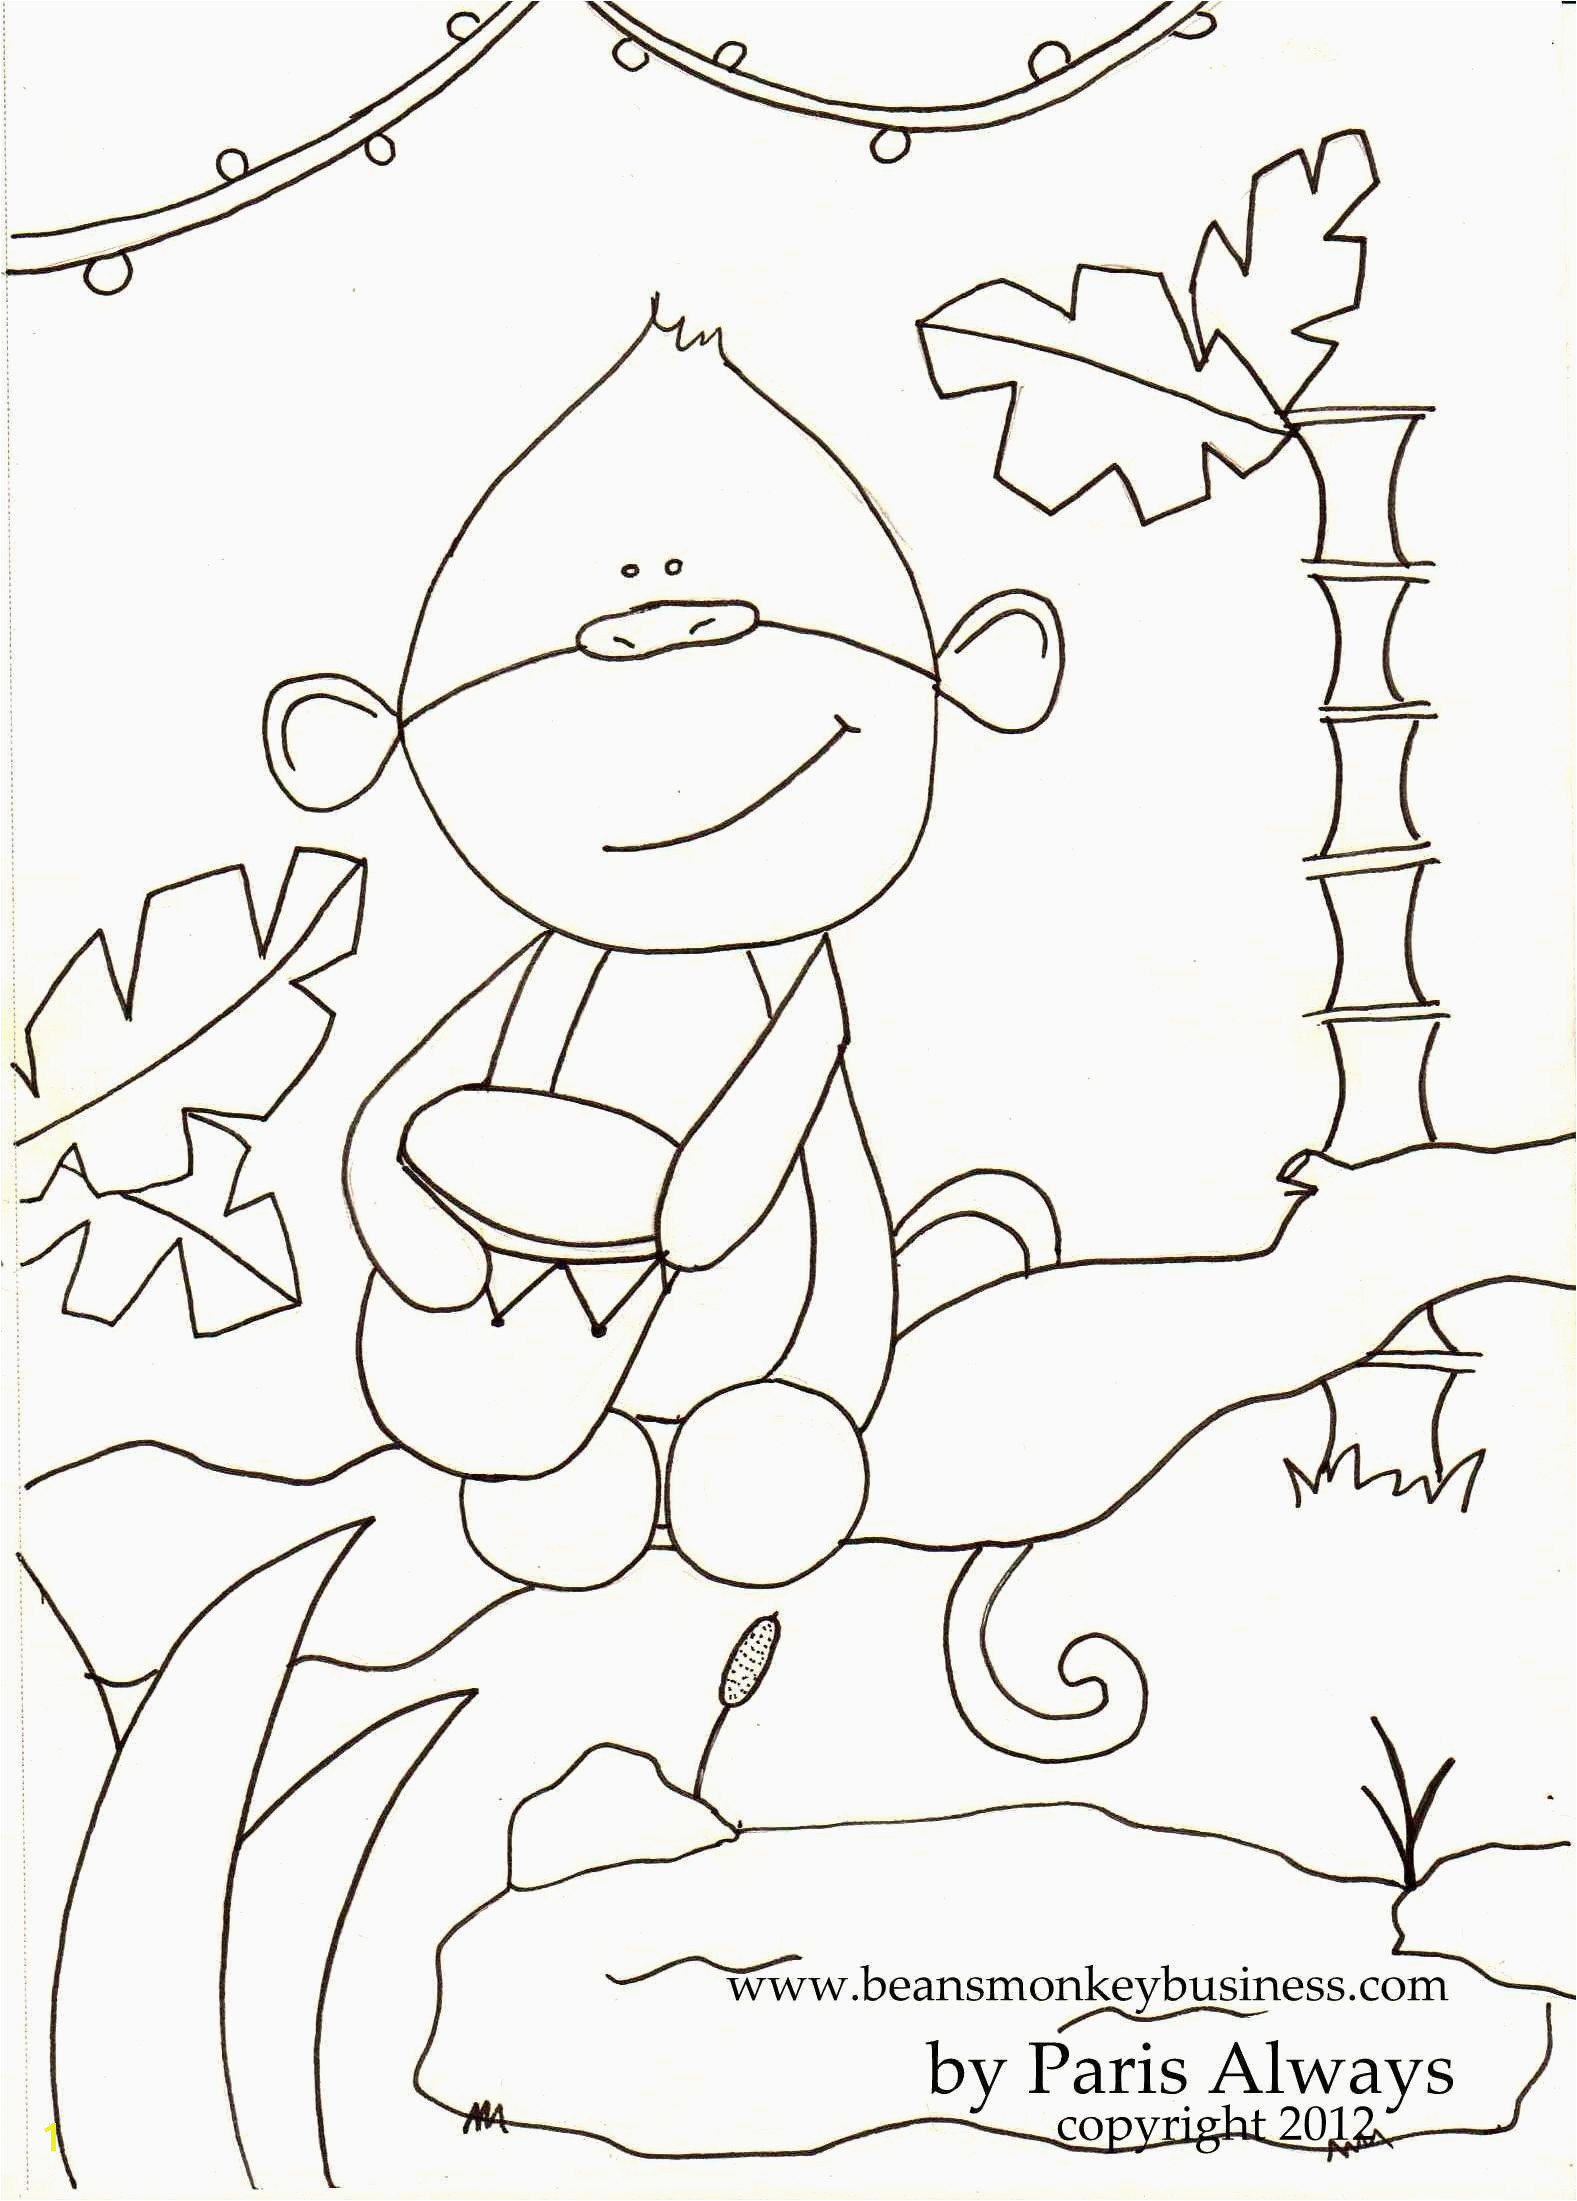 Preschool Holiday Crafts Inspirational Coloring Books Preschool Inspirational Fall Coloring Pages 0d Page 19 Elegant